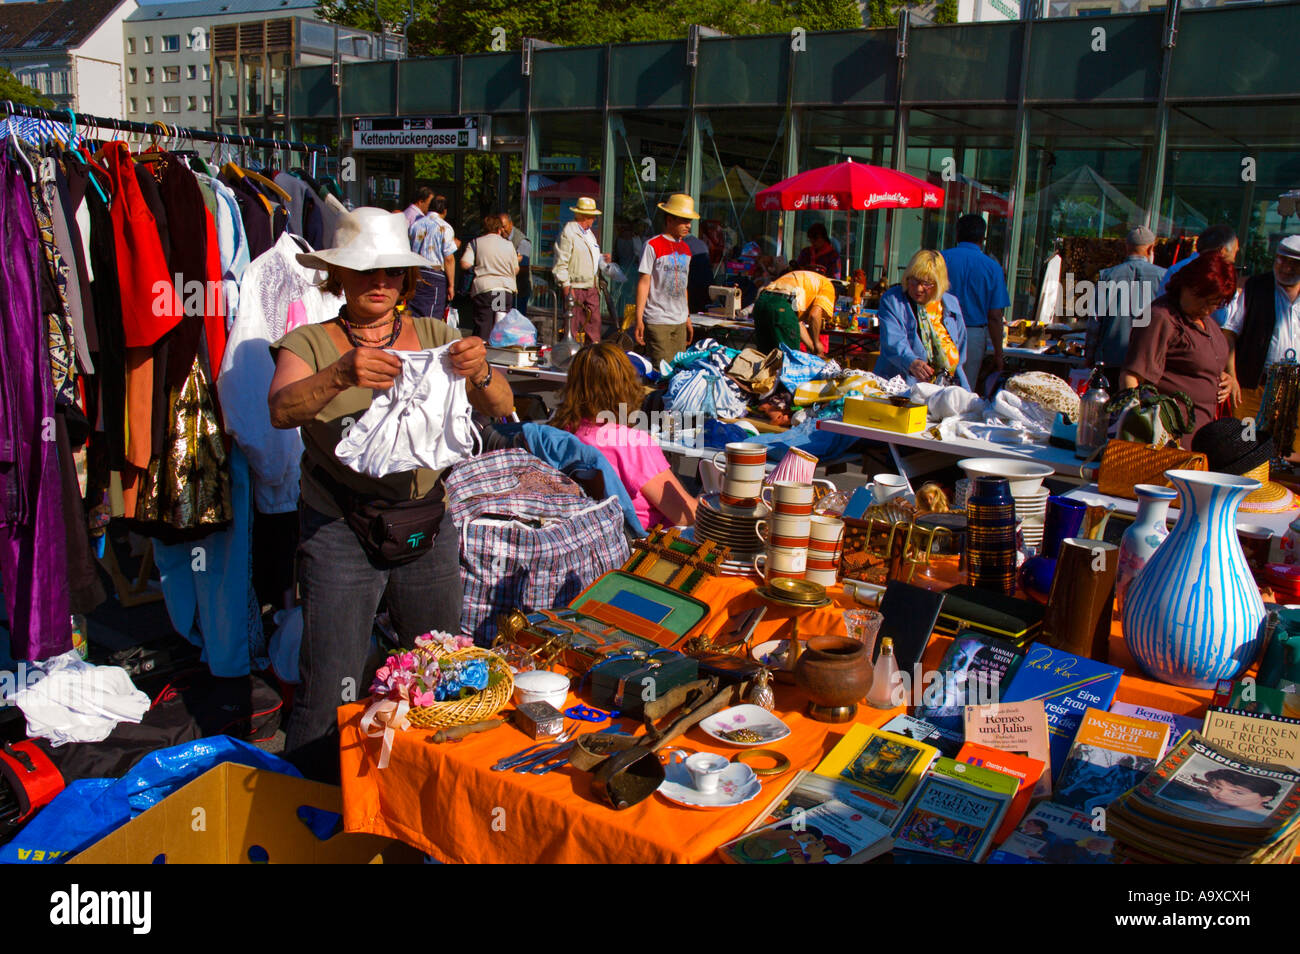 alt wiener flohmarkt market at kettenbr ckengasse metro station stock photo royalty free image. Black Bedroom Furniture Sets. Home Design Ideas